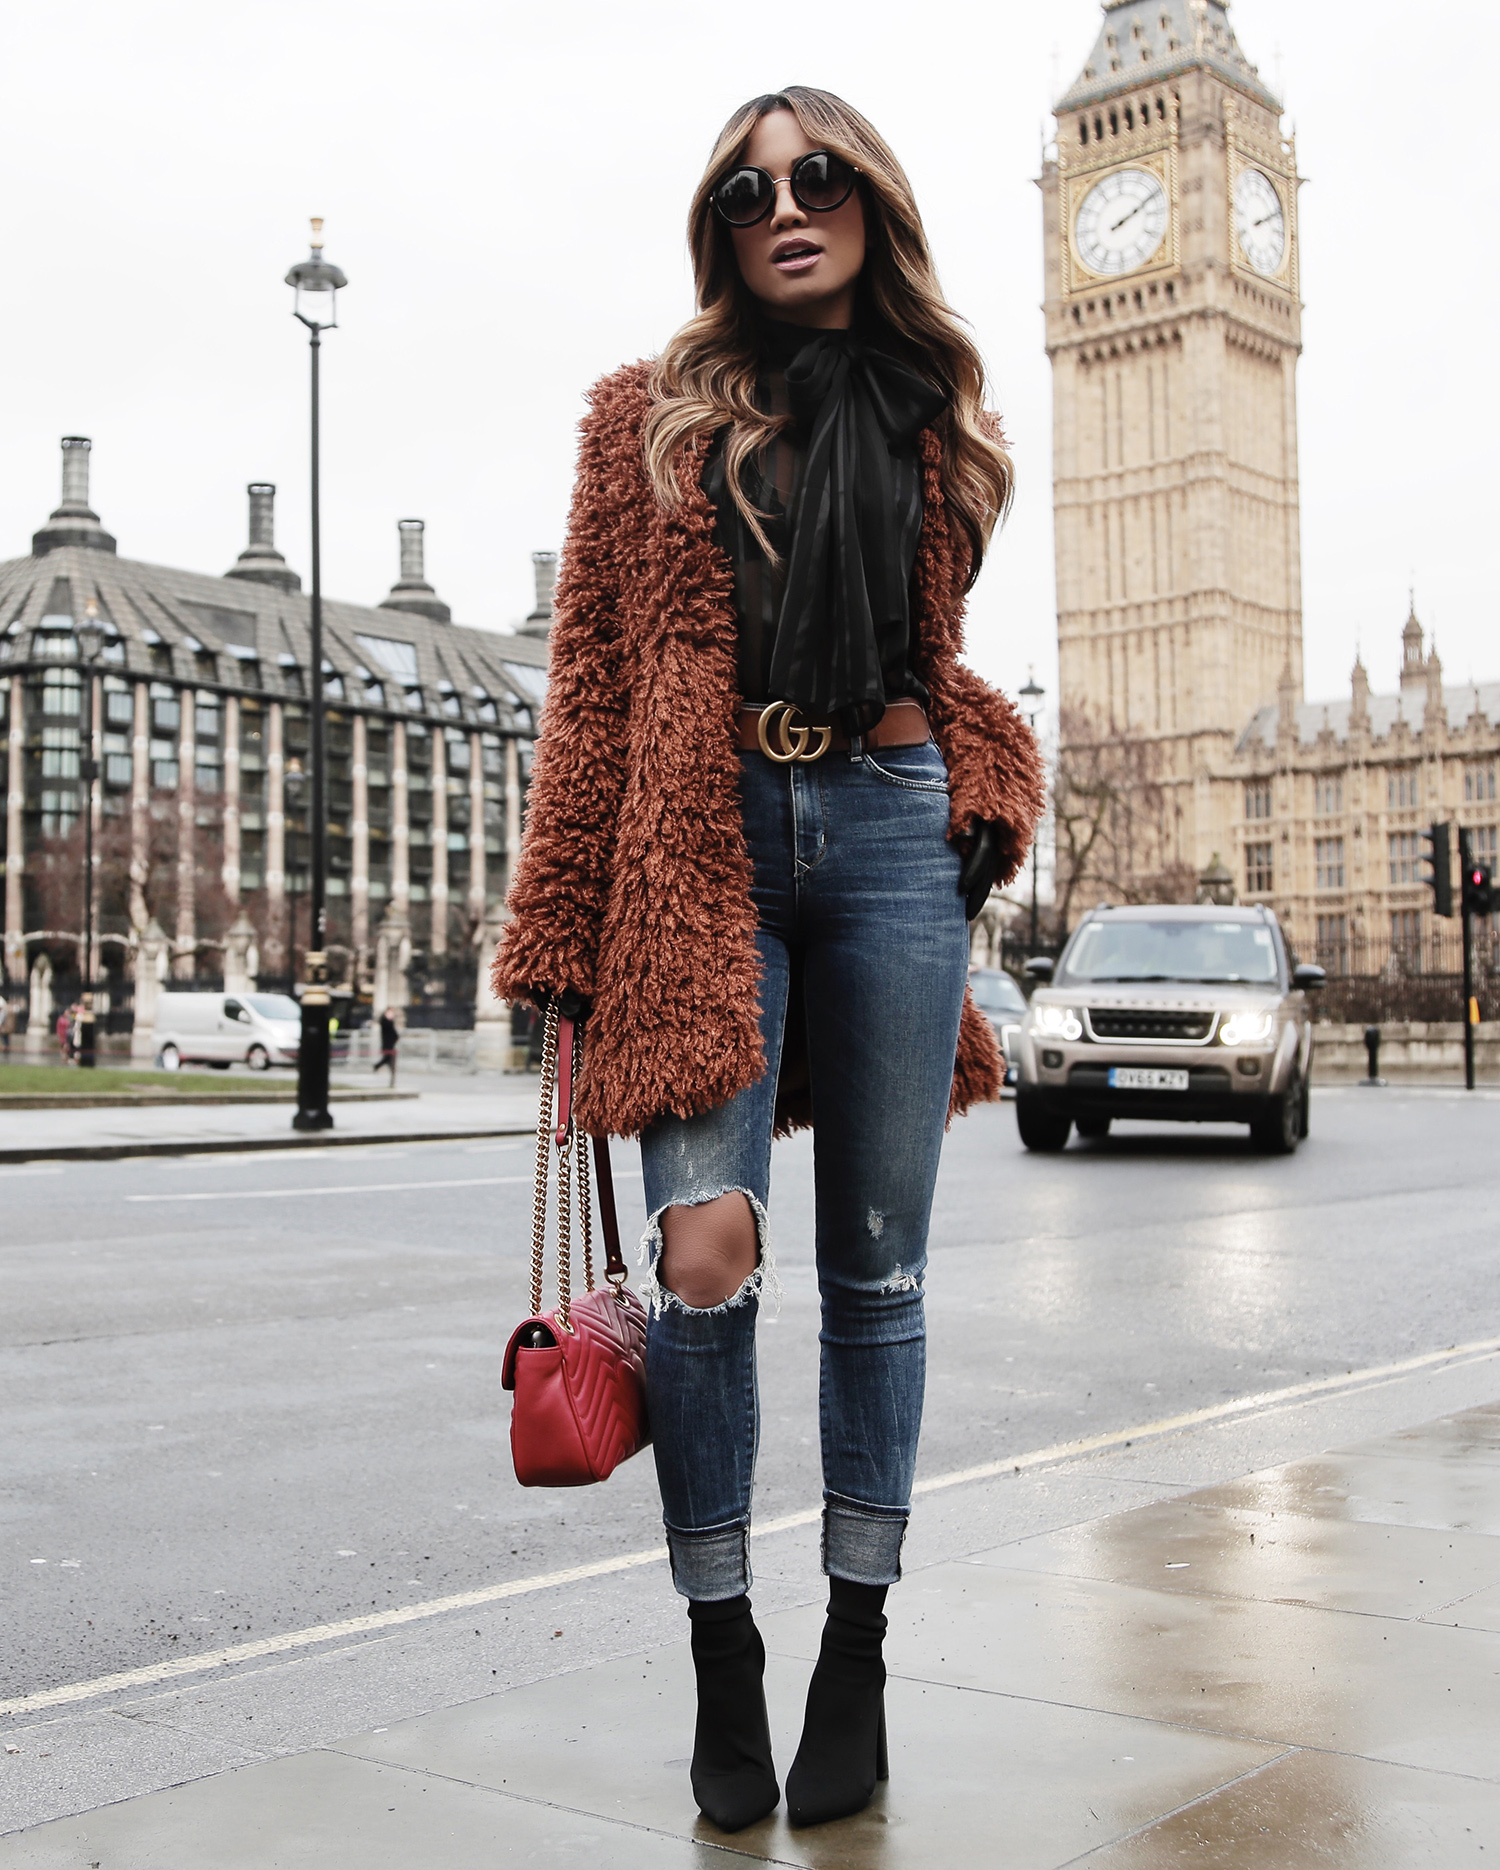 Jessi Malay in London